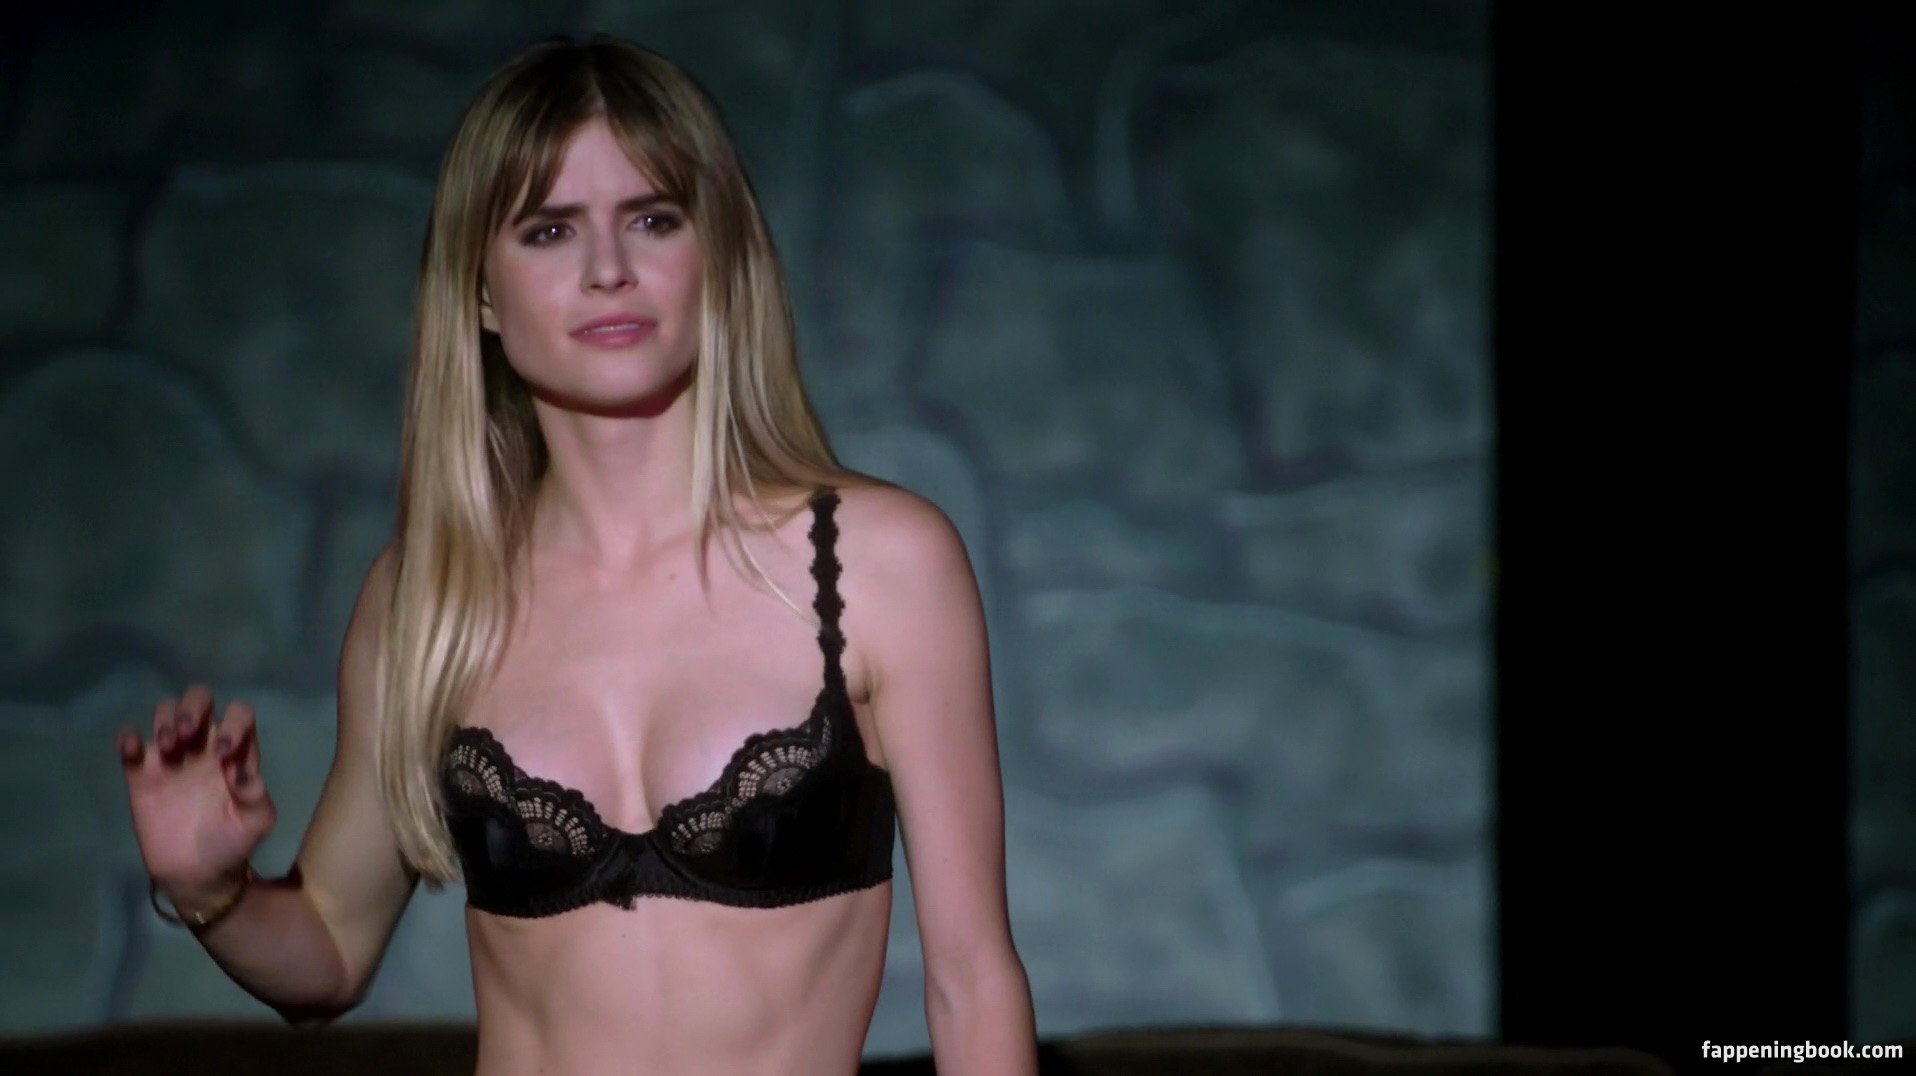 Carlson young nude